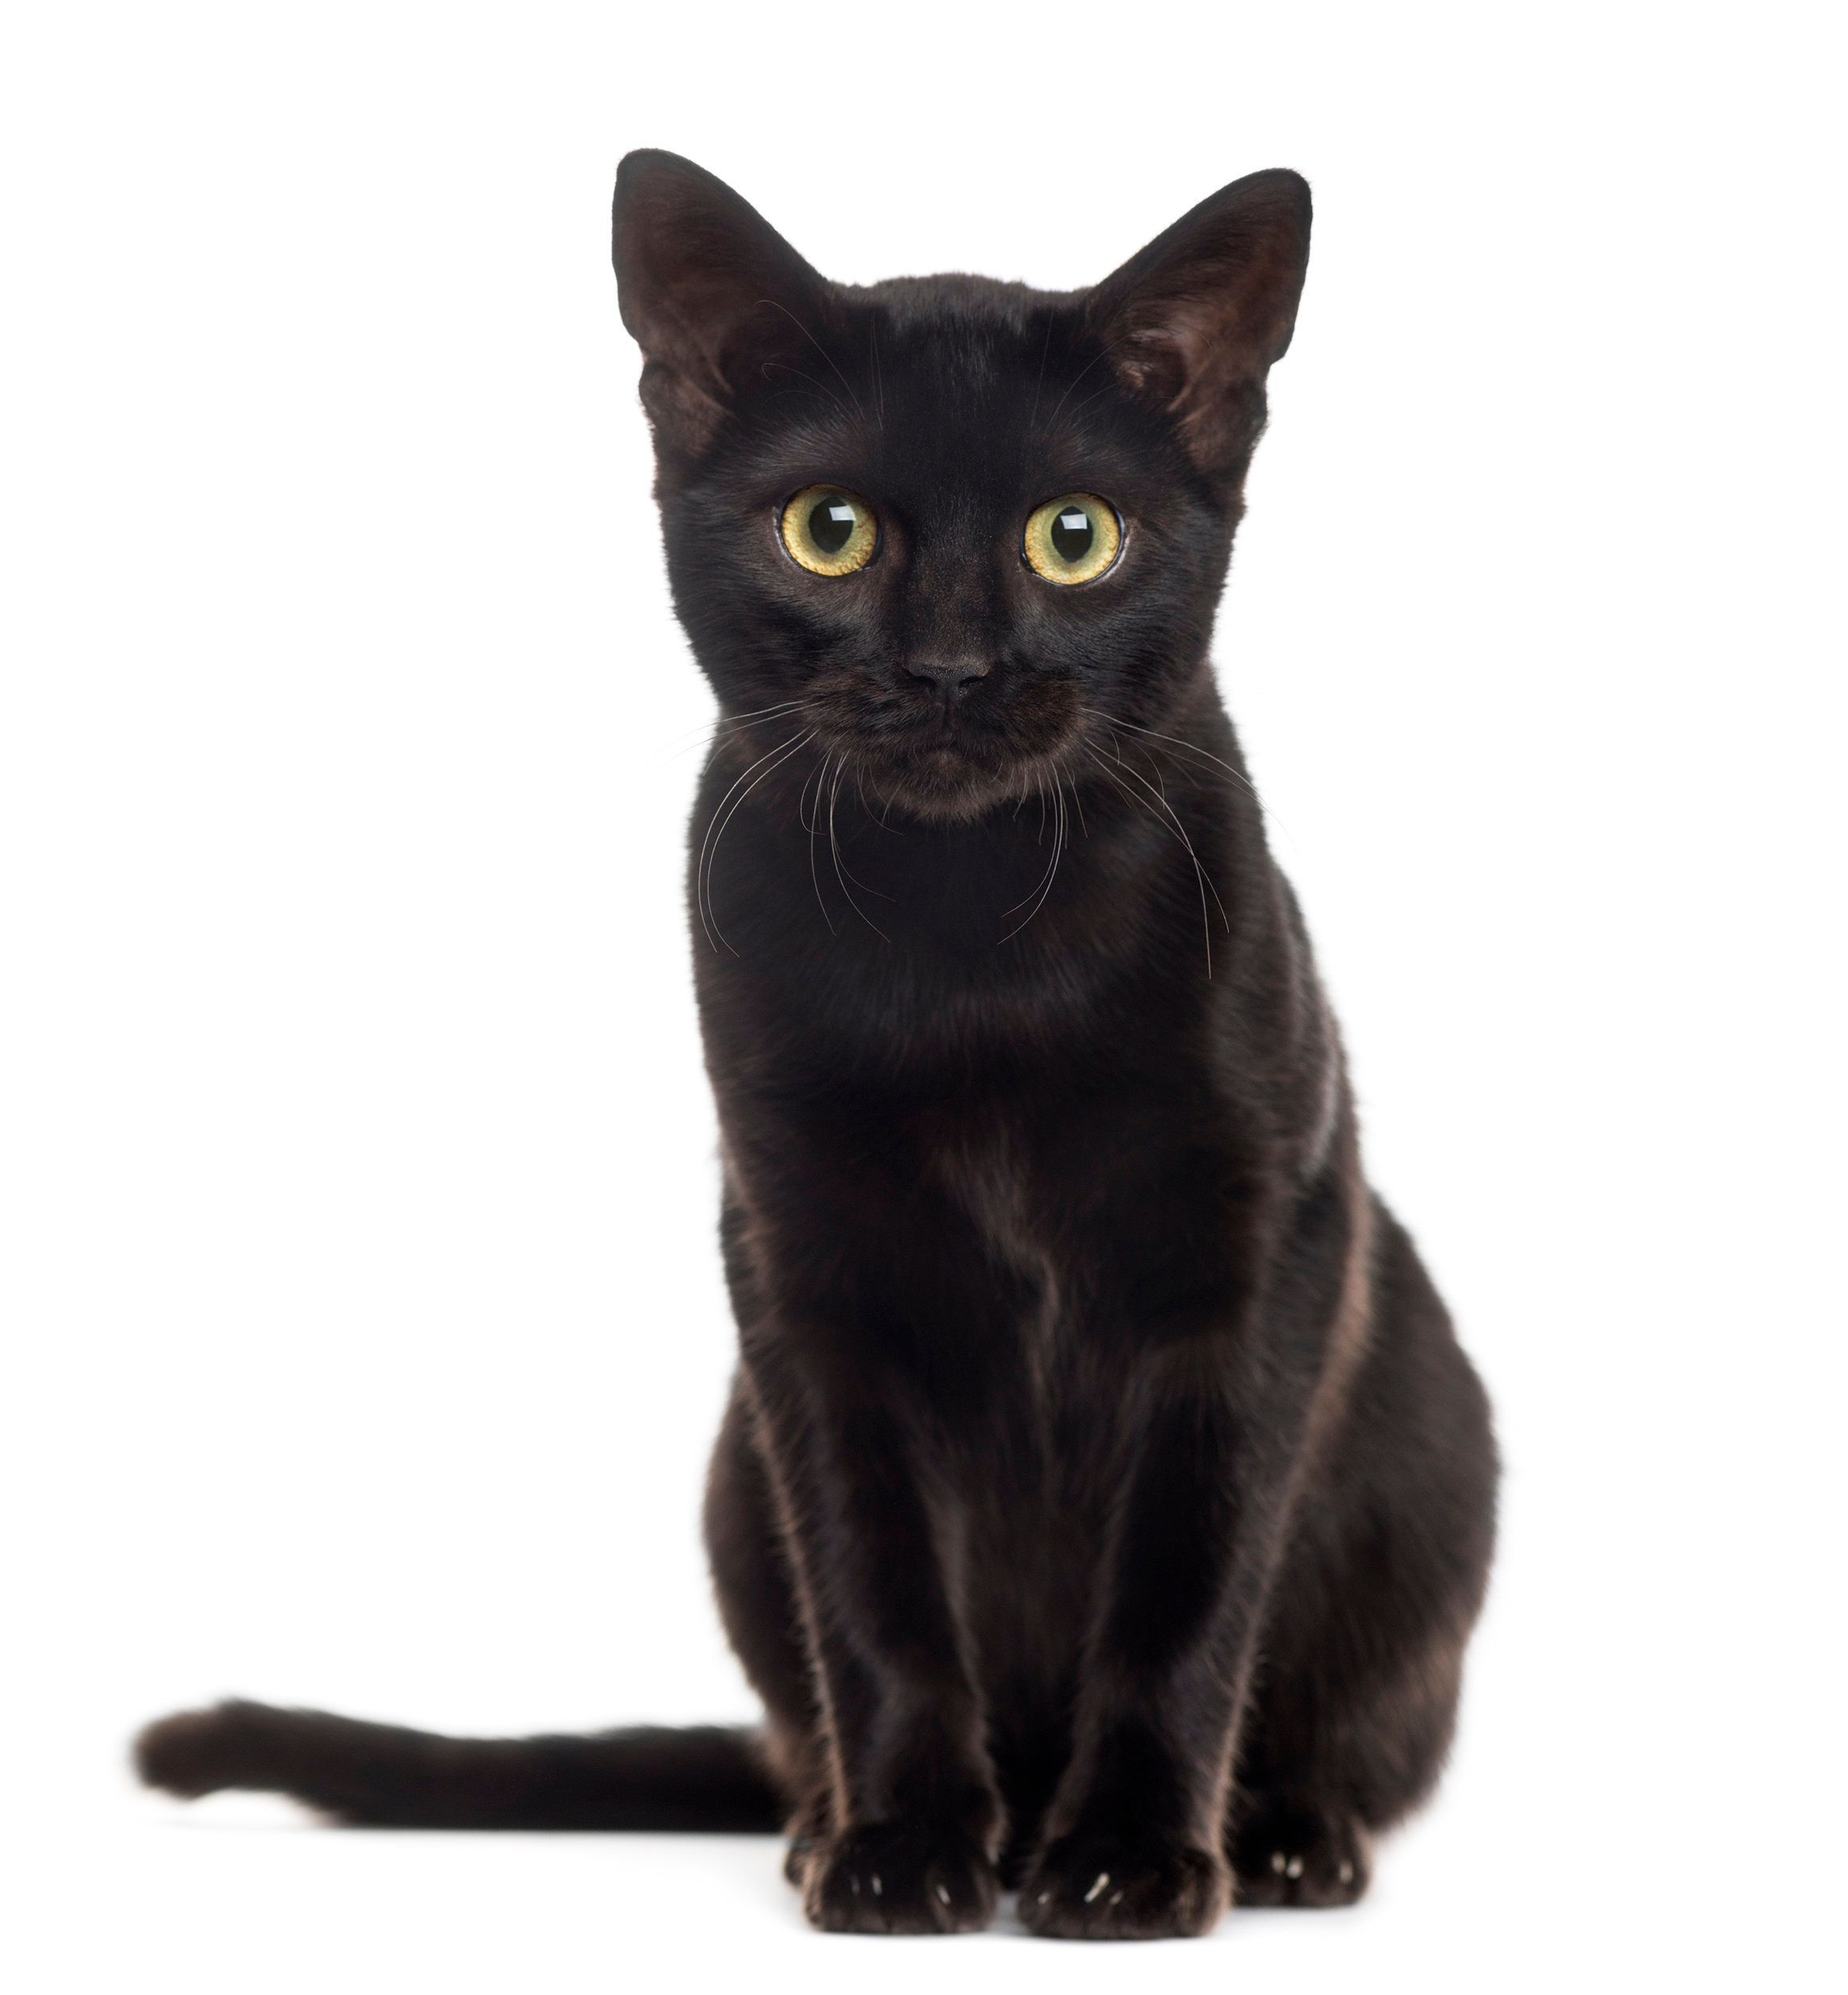 Go pet a cat! November 17 is National Black Cat Day.